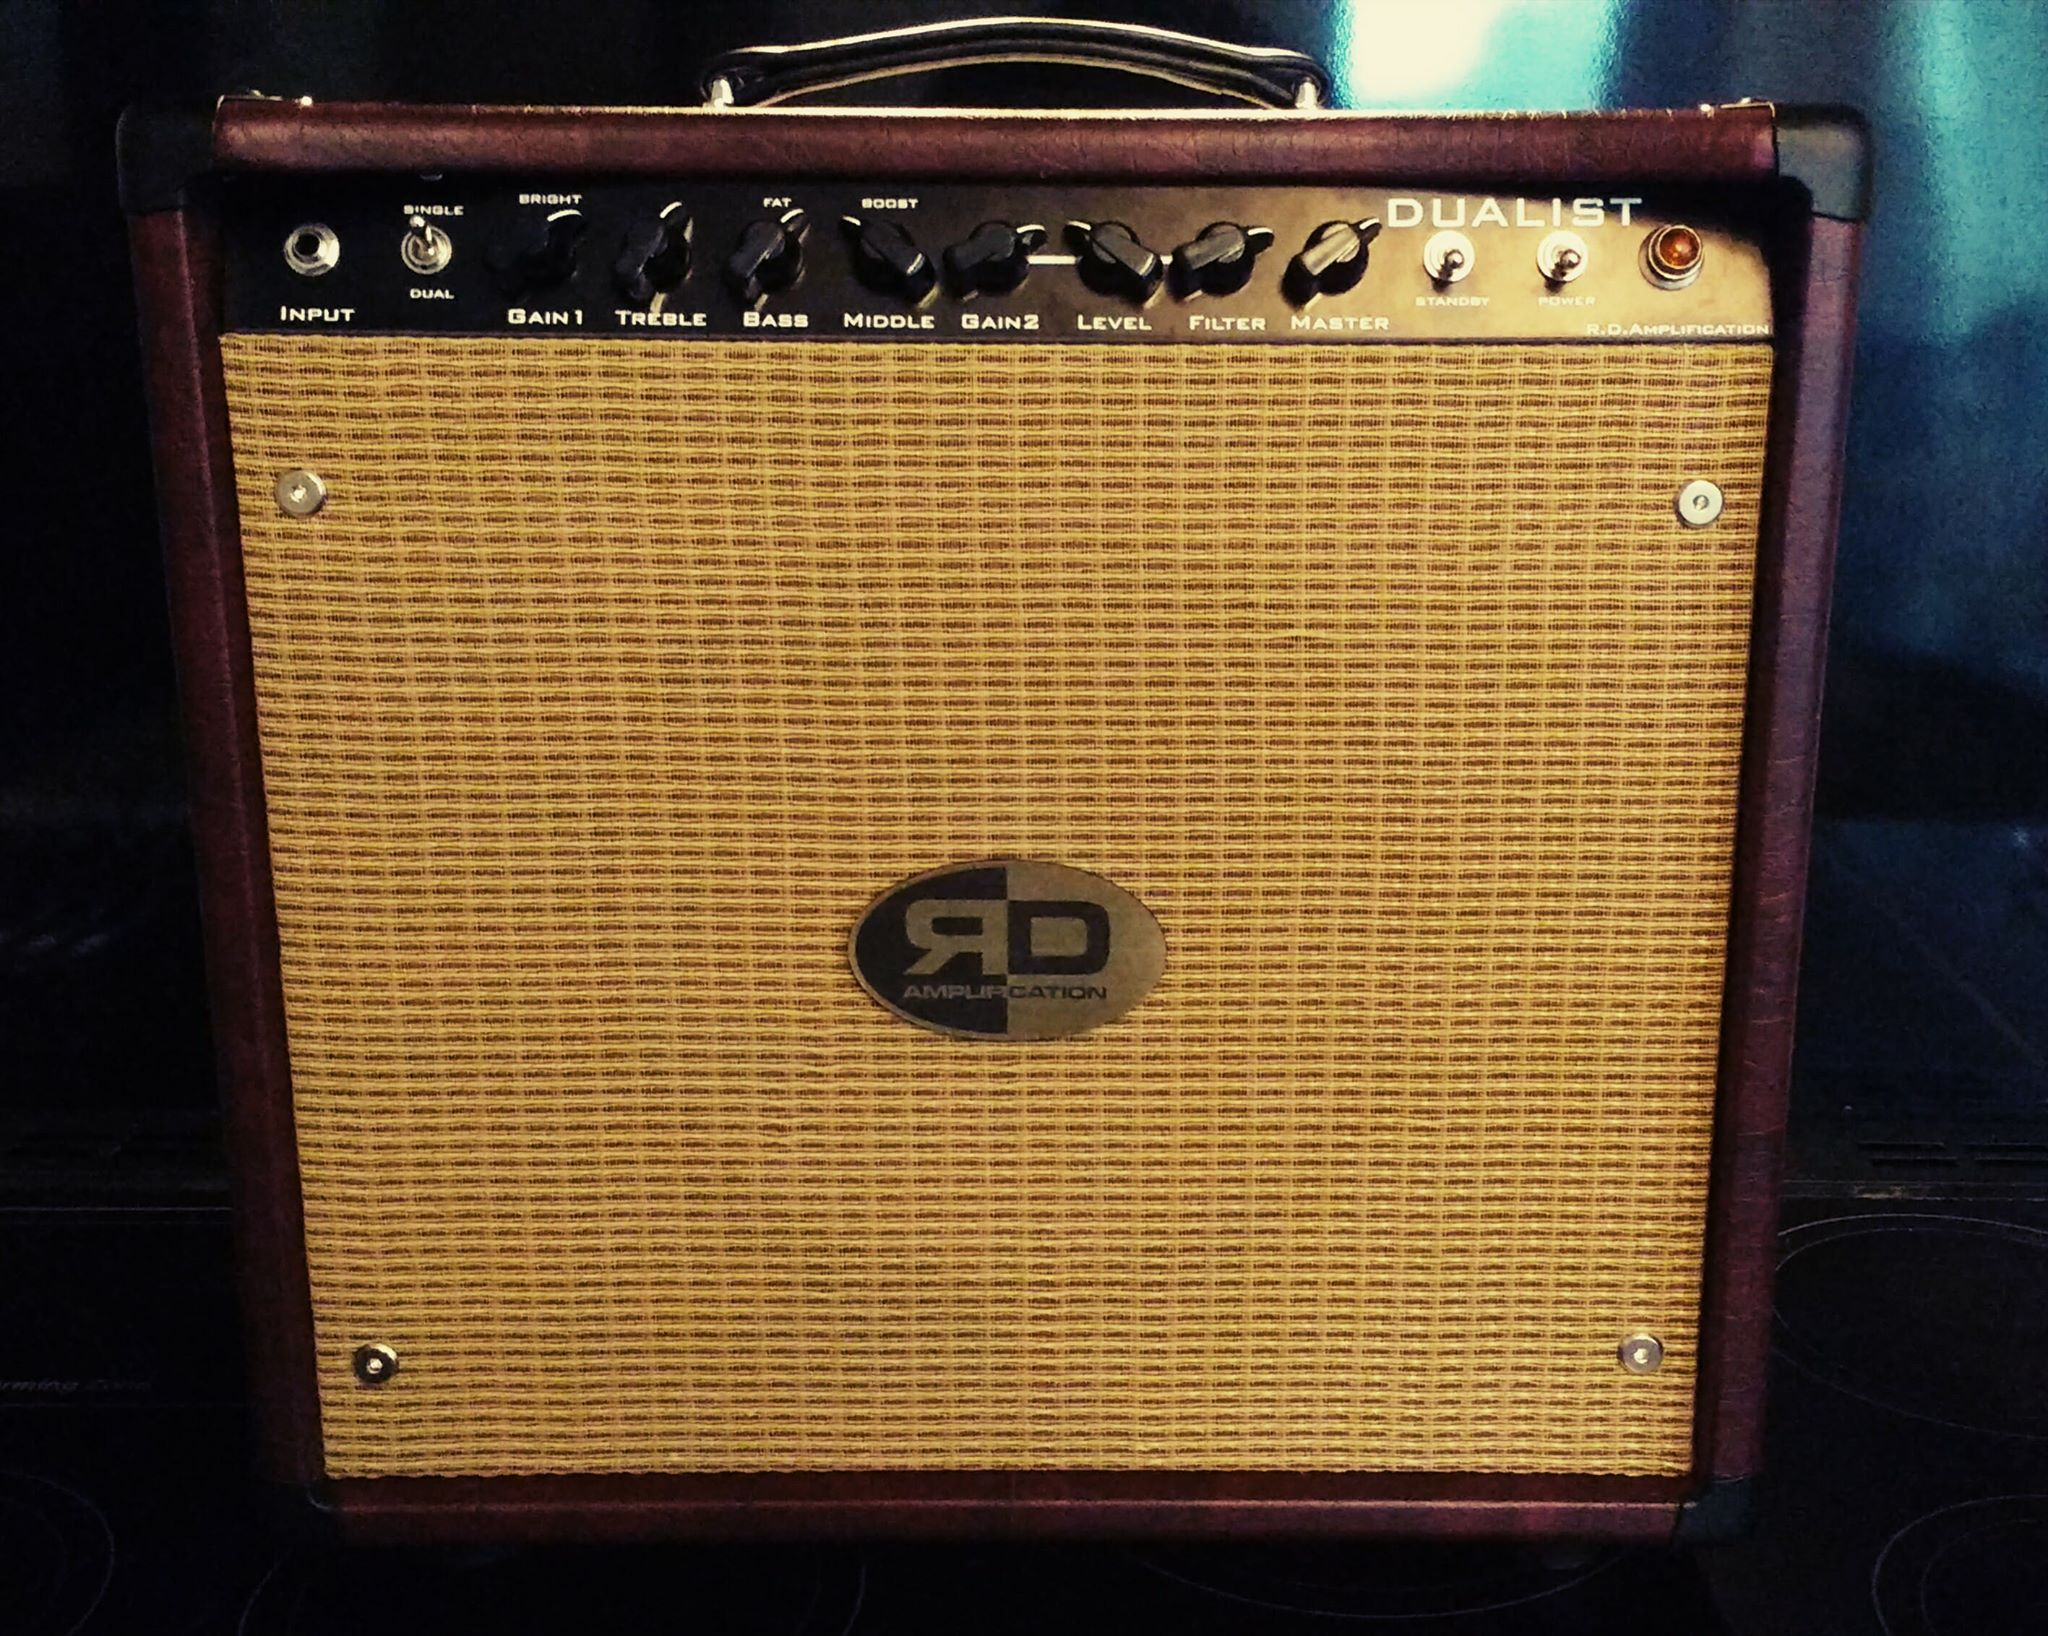 RD Amplification | DUALIST 1x12 Combo